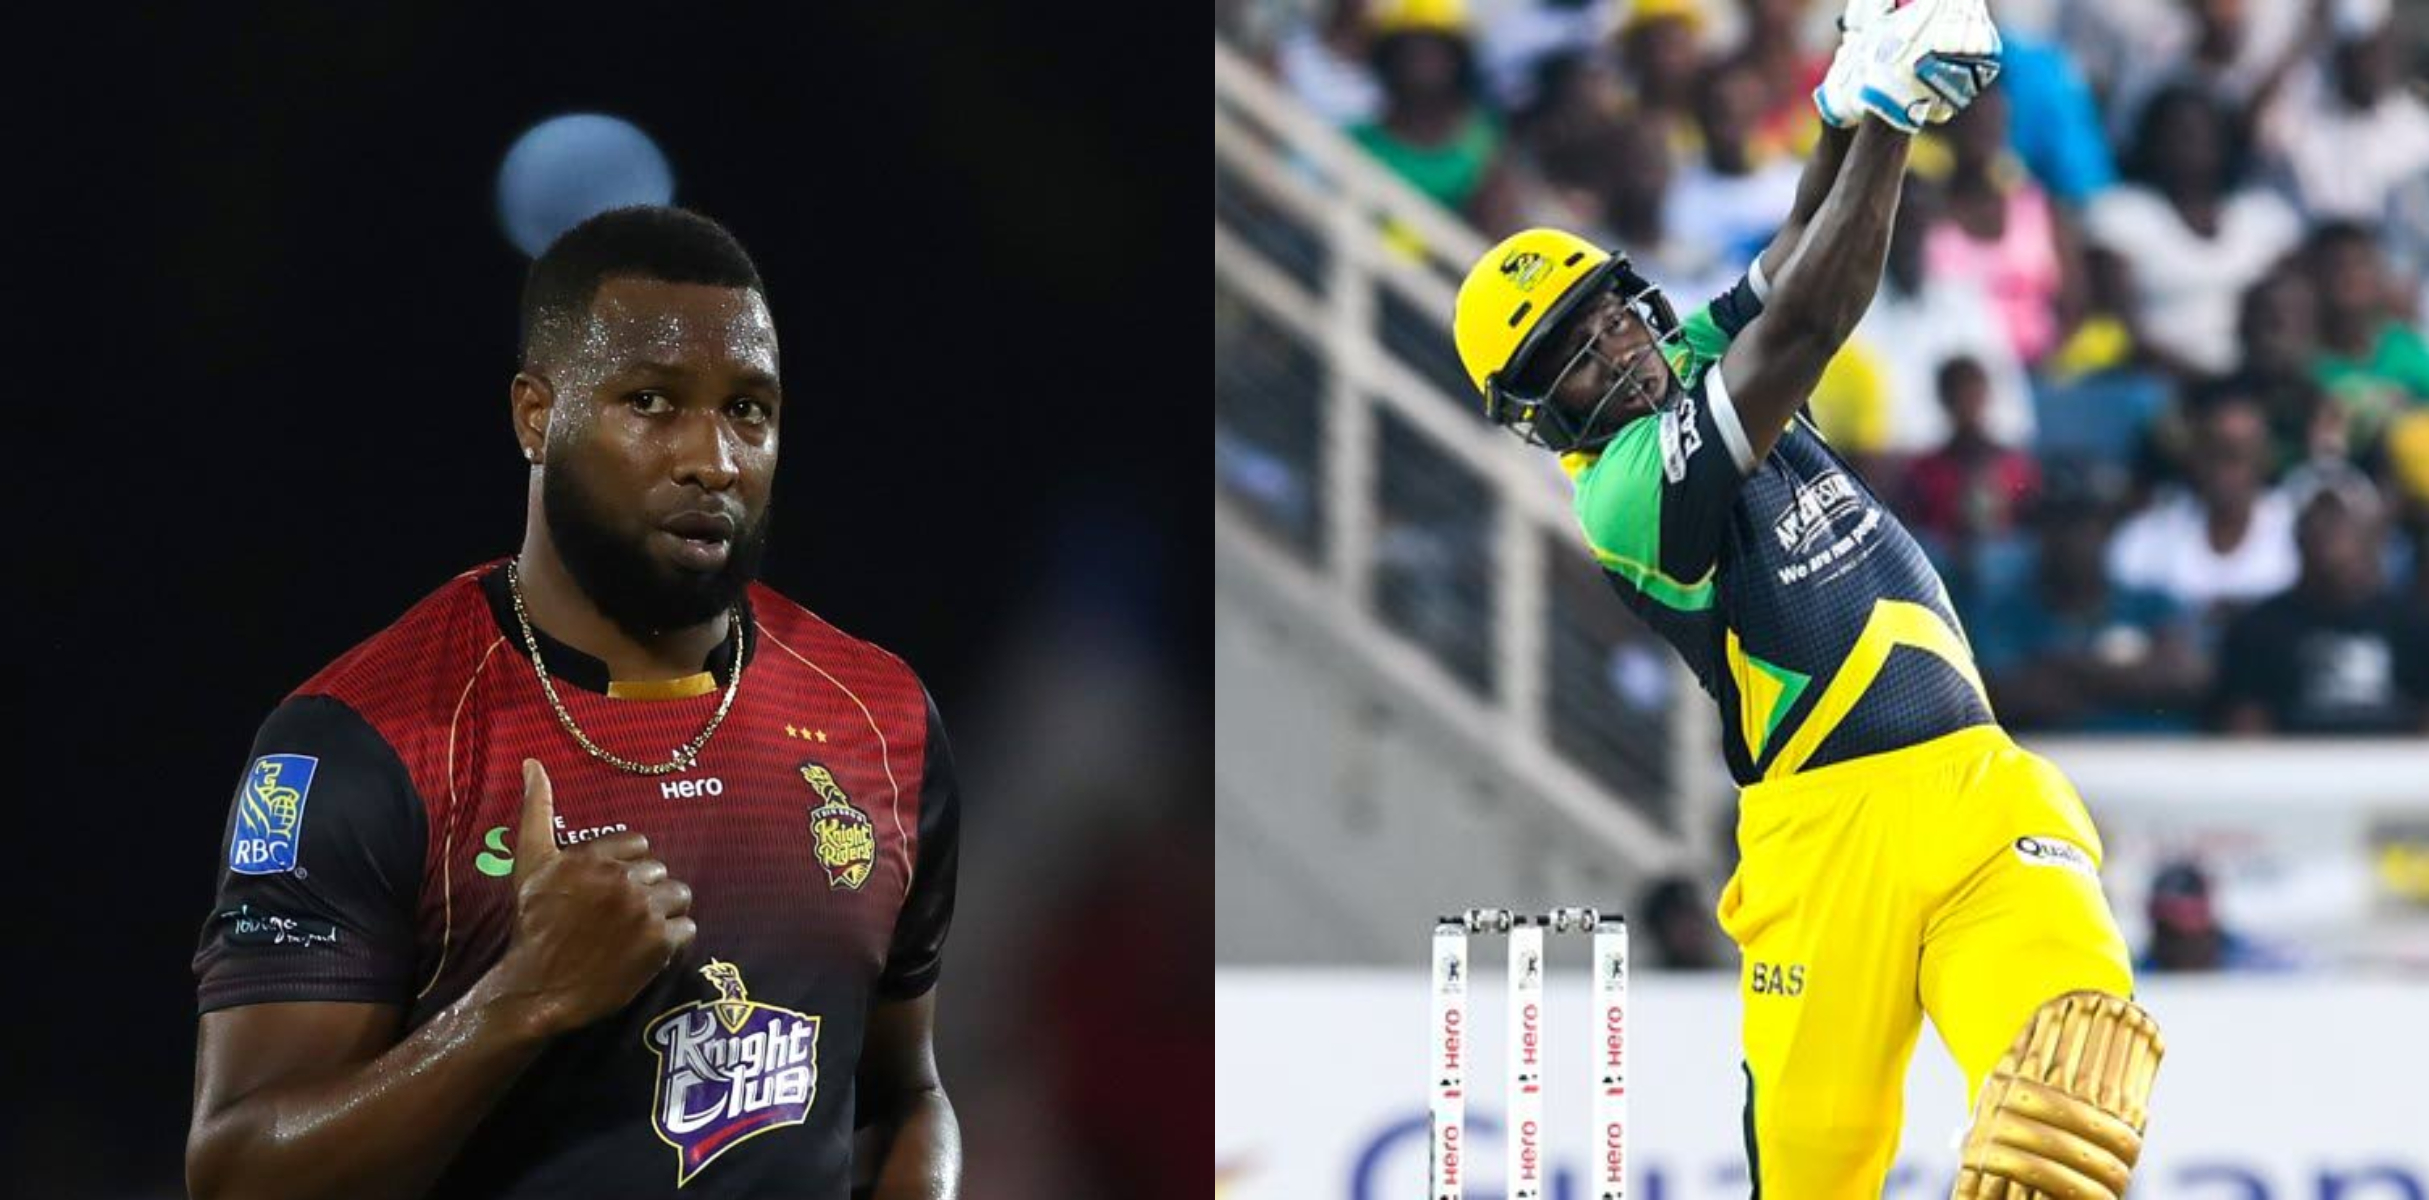 Trinbago Knight Riders will be up against Jamaica Tallawahs in the first semi-final